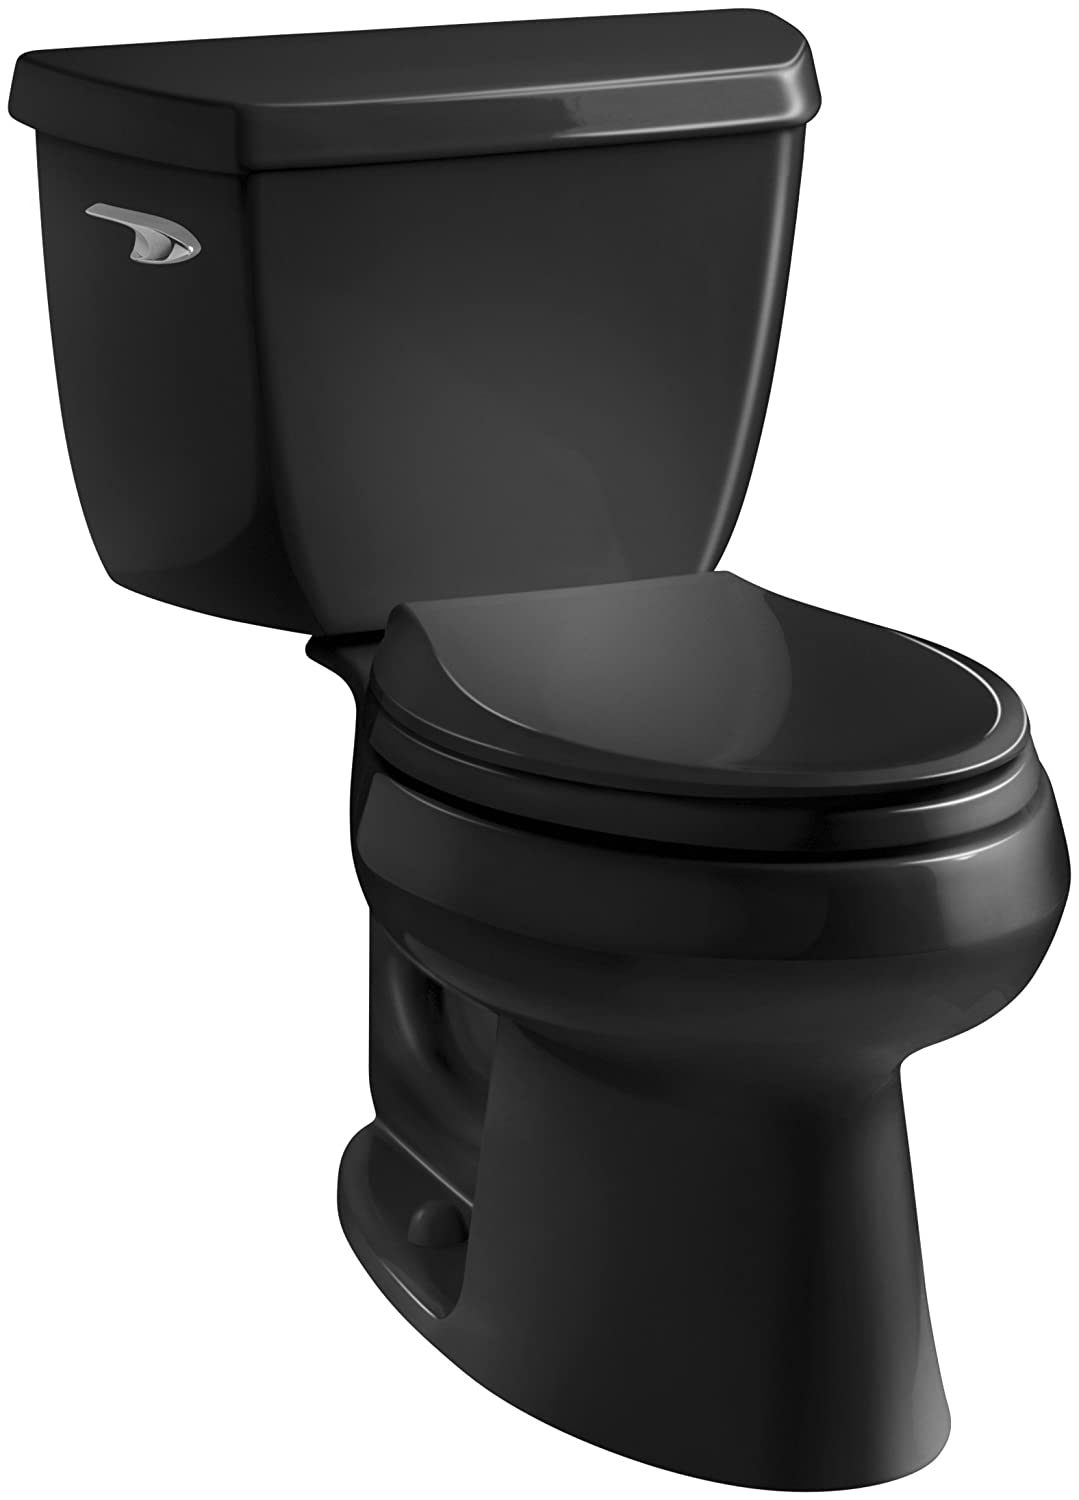 Kohler K-3575-0 Wellworth Classic 1.28 gpf Elongated Toilet with ...